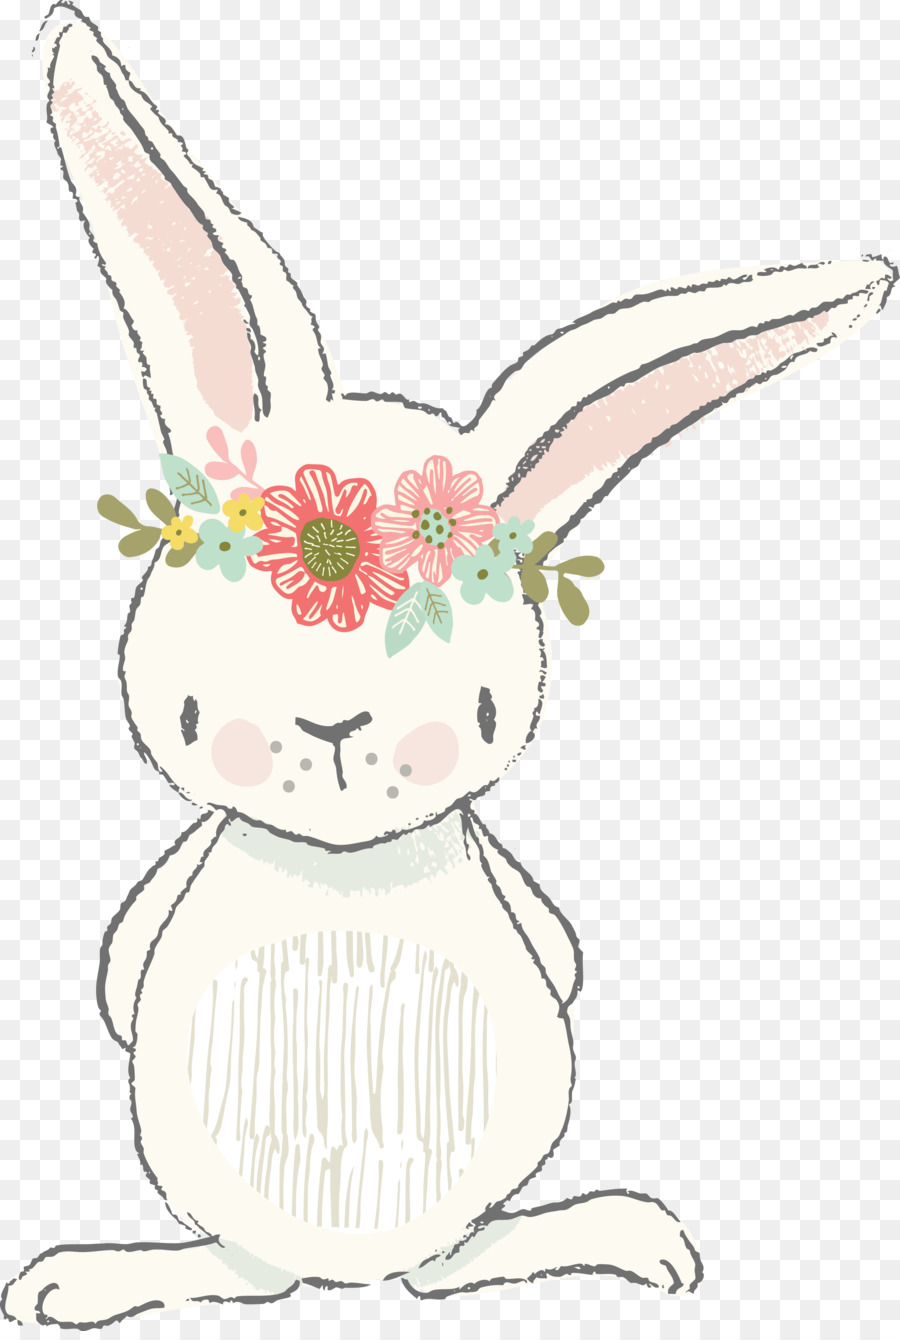 900x1340 Easter Bunny Rabbit Watercolor Painting Clip Art